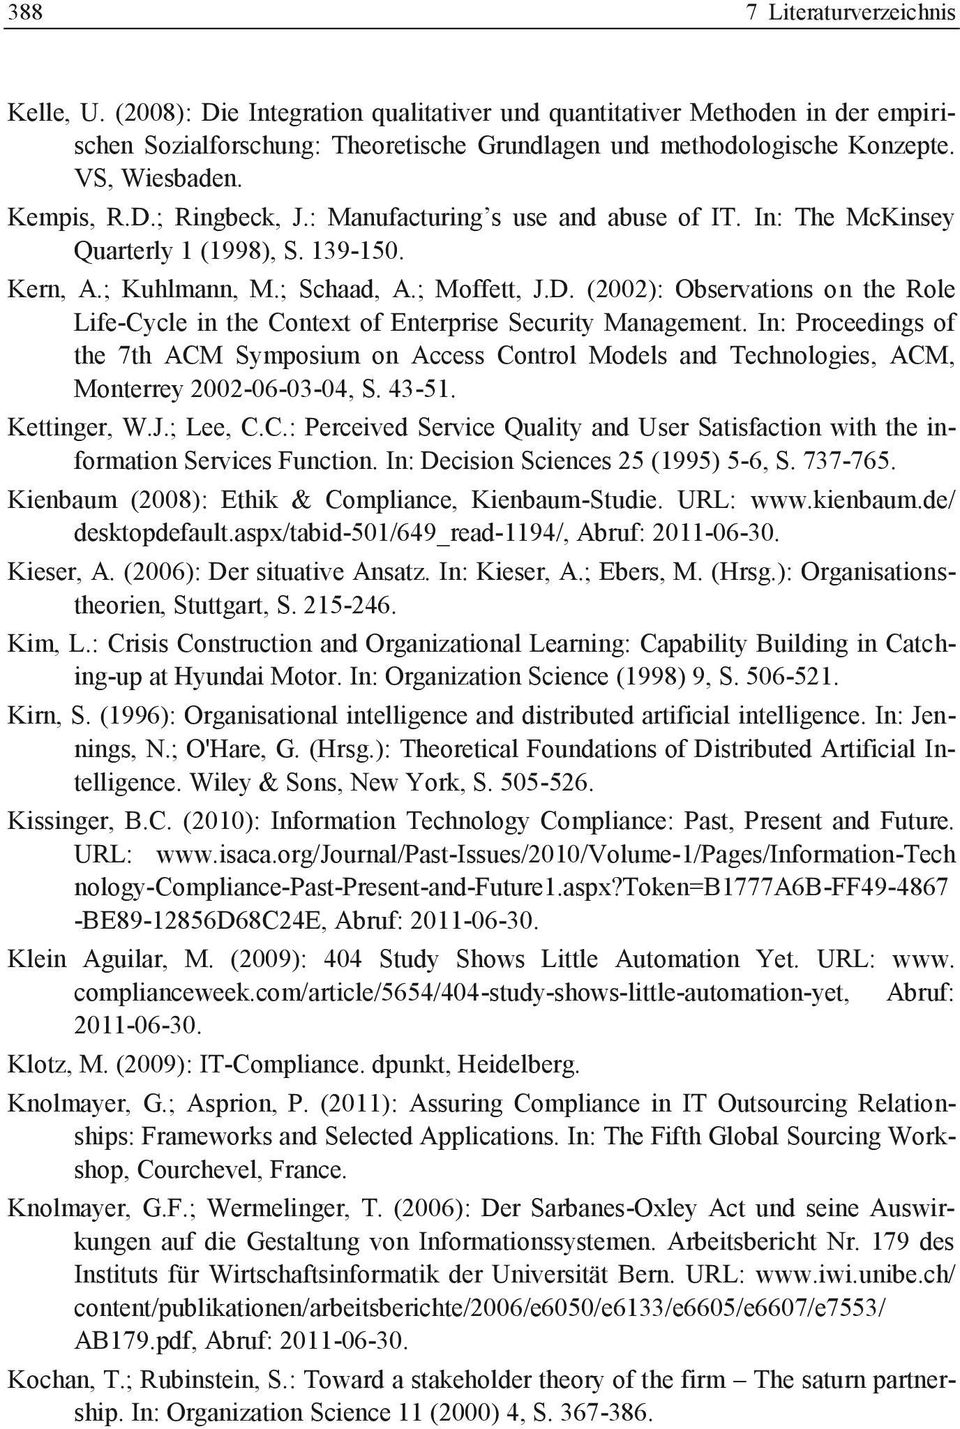 In: Proceedings of the 7th ACM Symposium on Access Control Models and Technologies, ACM, Monterrey 2002-06-03-04, S. 43-51. Kettinger, W.J.; Lee, C.C.: Perceived Service Quality and User Satisfaction with the information Services Function.